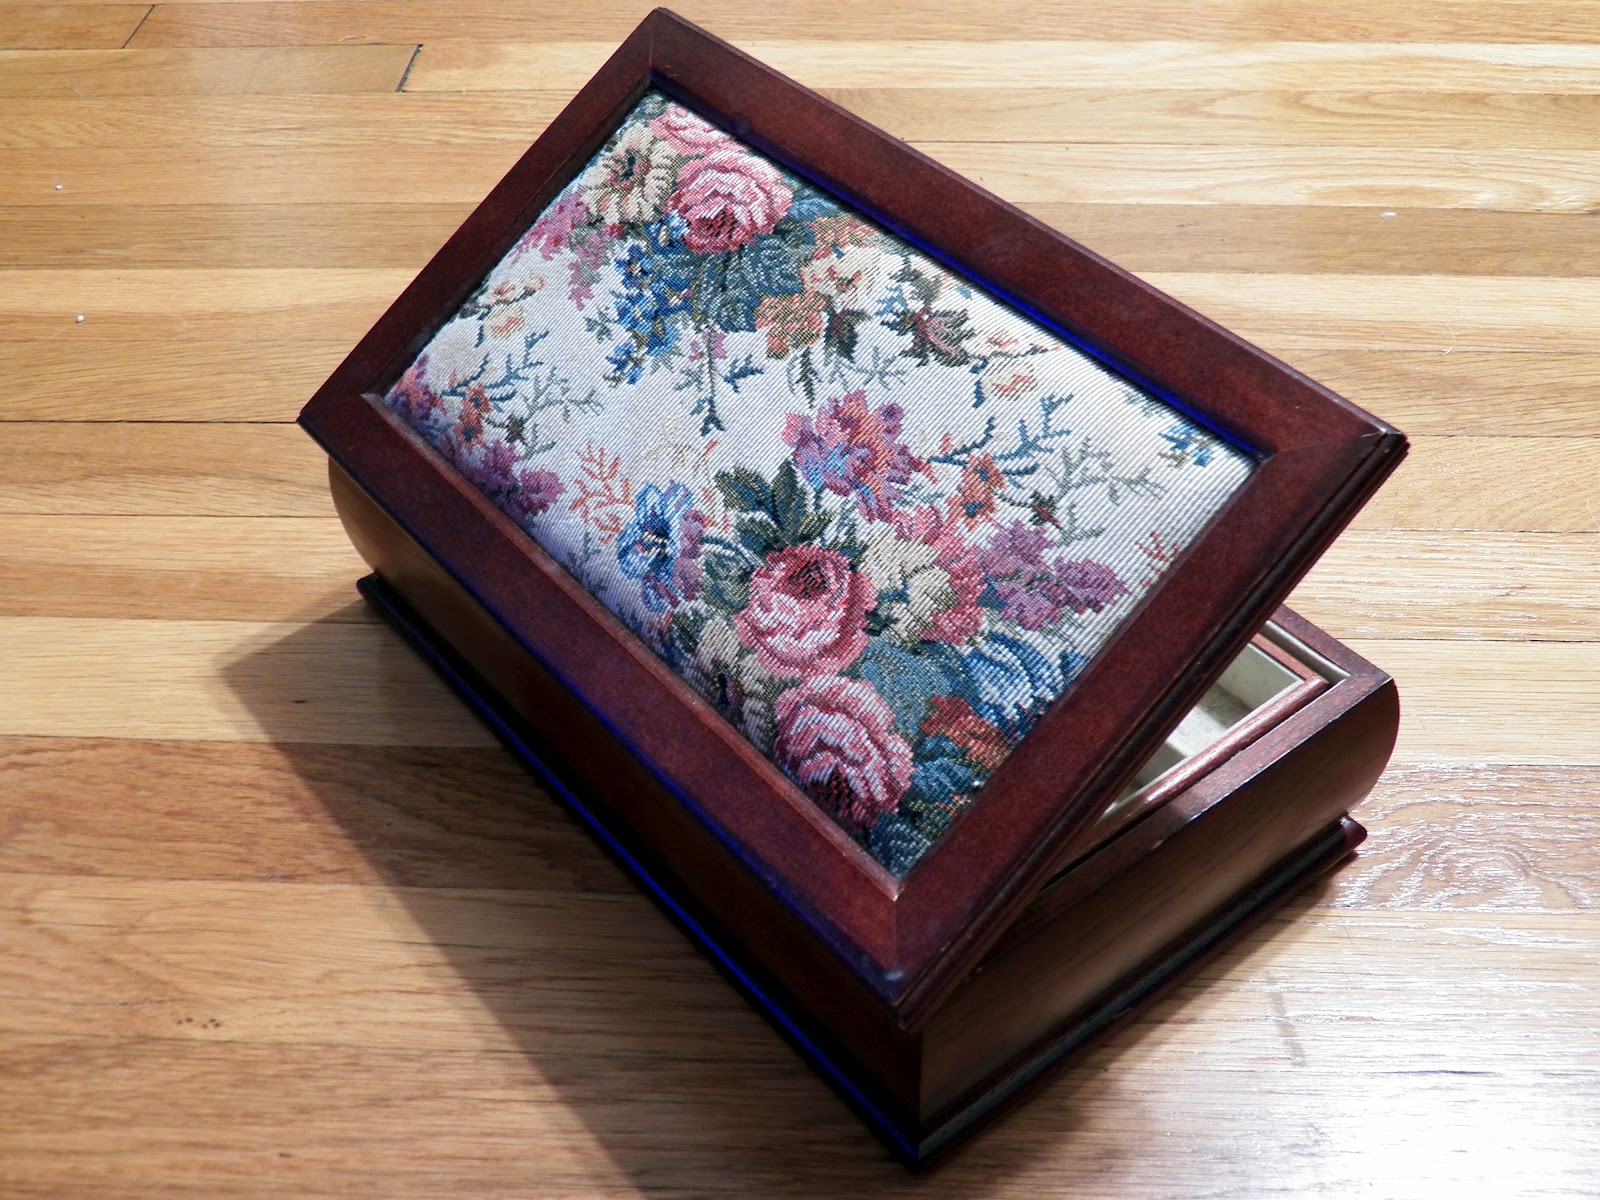 the jewelry box lid comprises the following layers from outside in a wooden frame tapestry and padding a backboard a layer of glue and a mirror